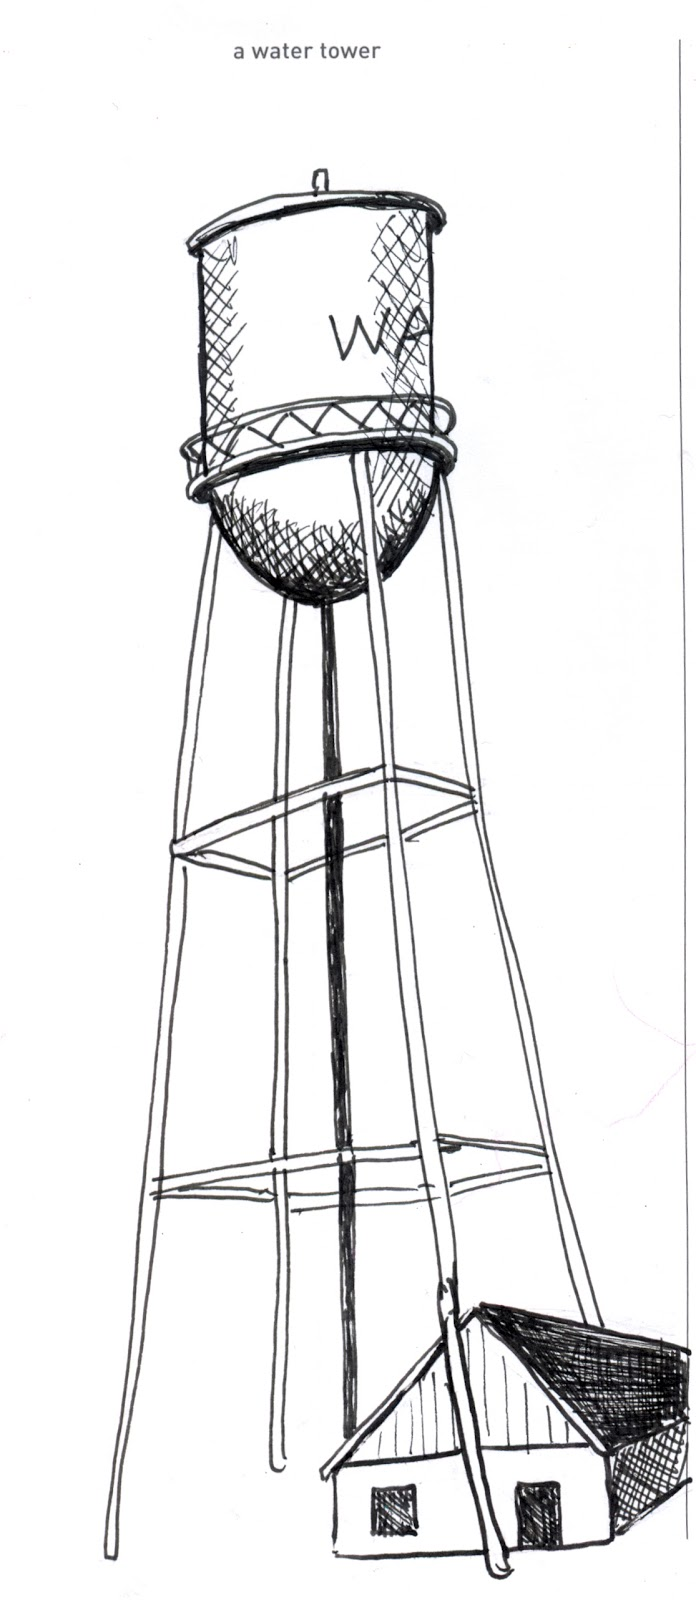 642 things to draw 52 a water tower pen and ink rendered by ana